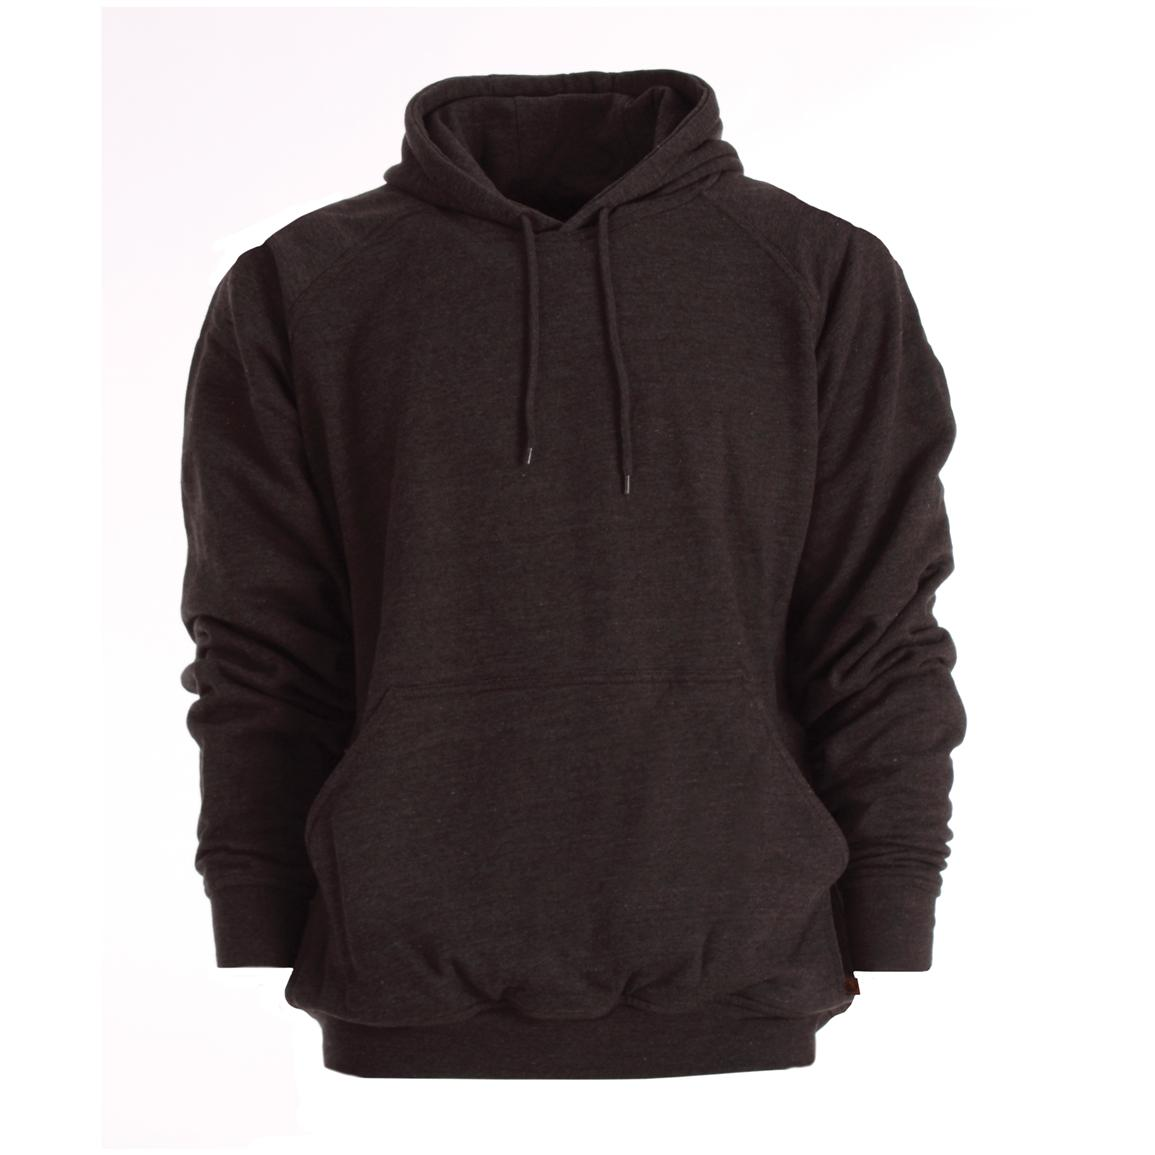 Berne Apparel® Thermal Lined Fleece Hooded Pullover, Charcoal